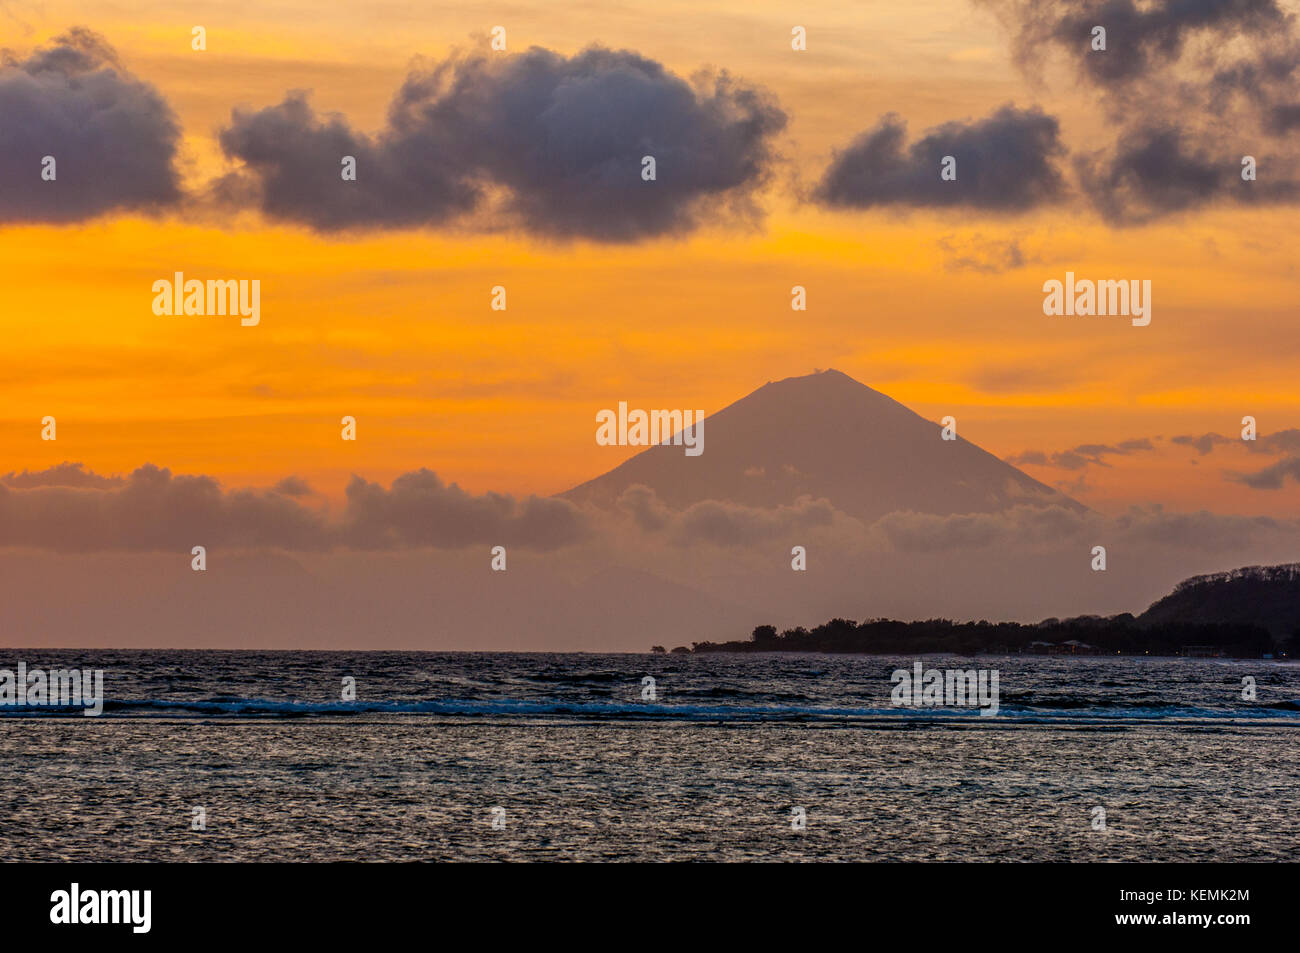 View of Agung from Gili Air Island at sunset. Lombok, Indonesia - Stock Image